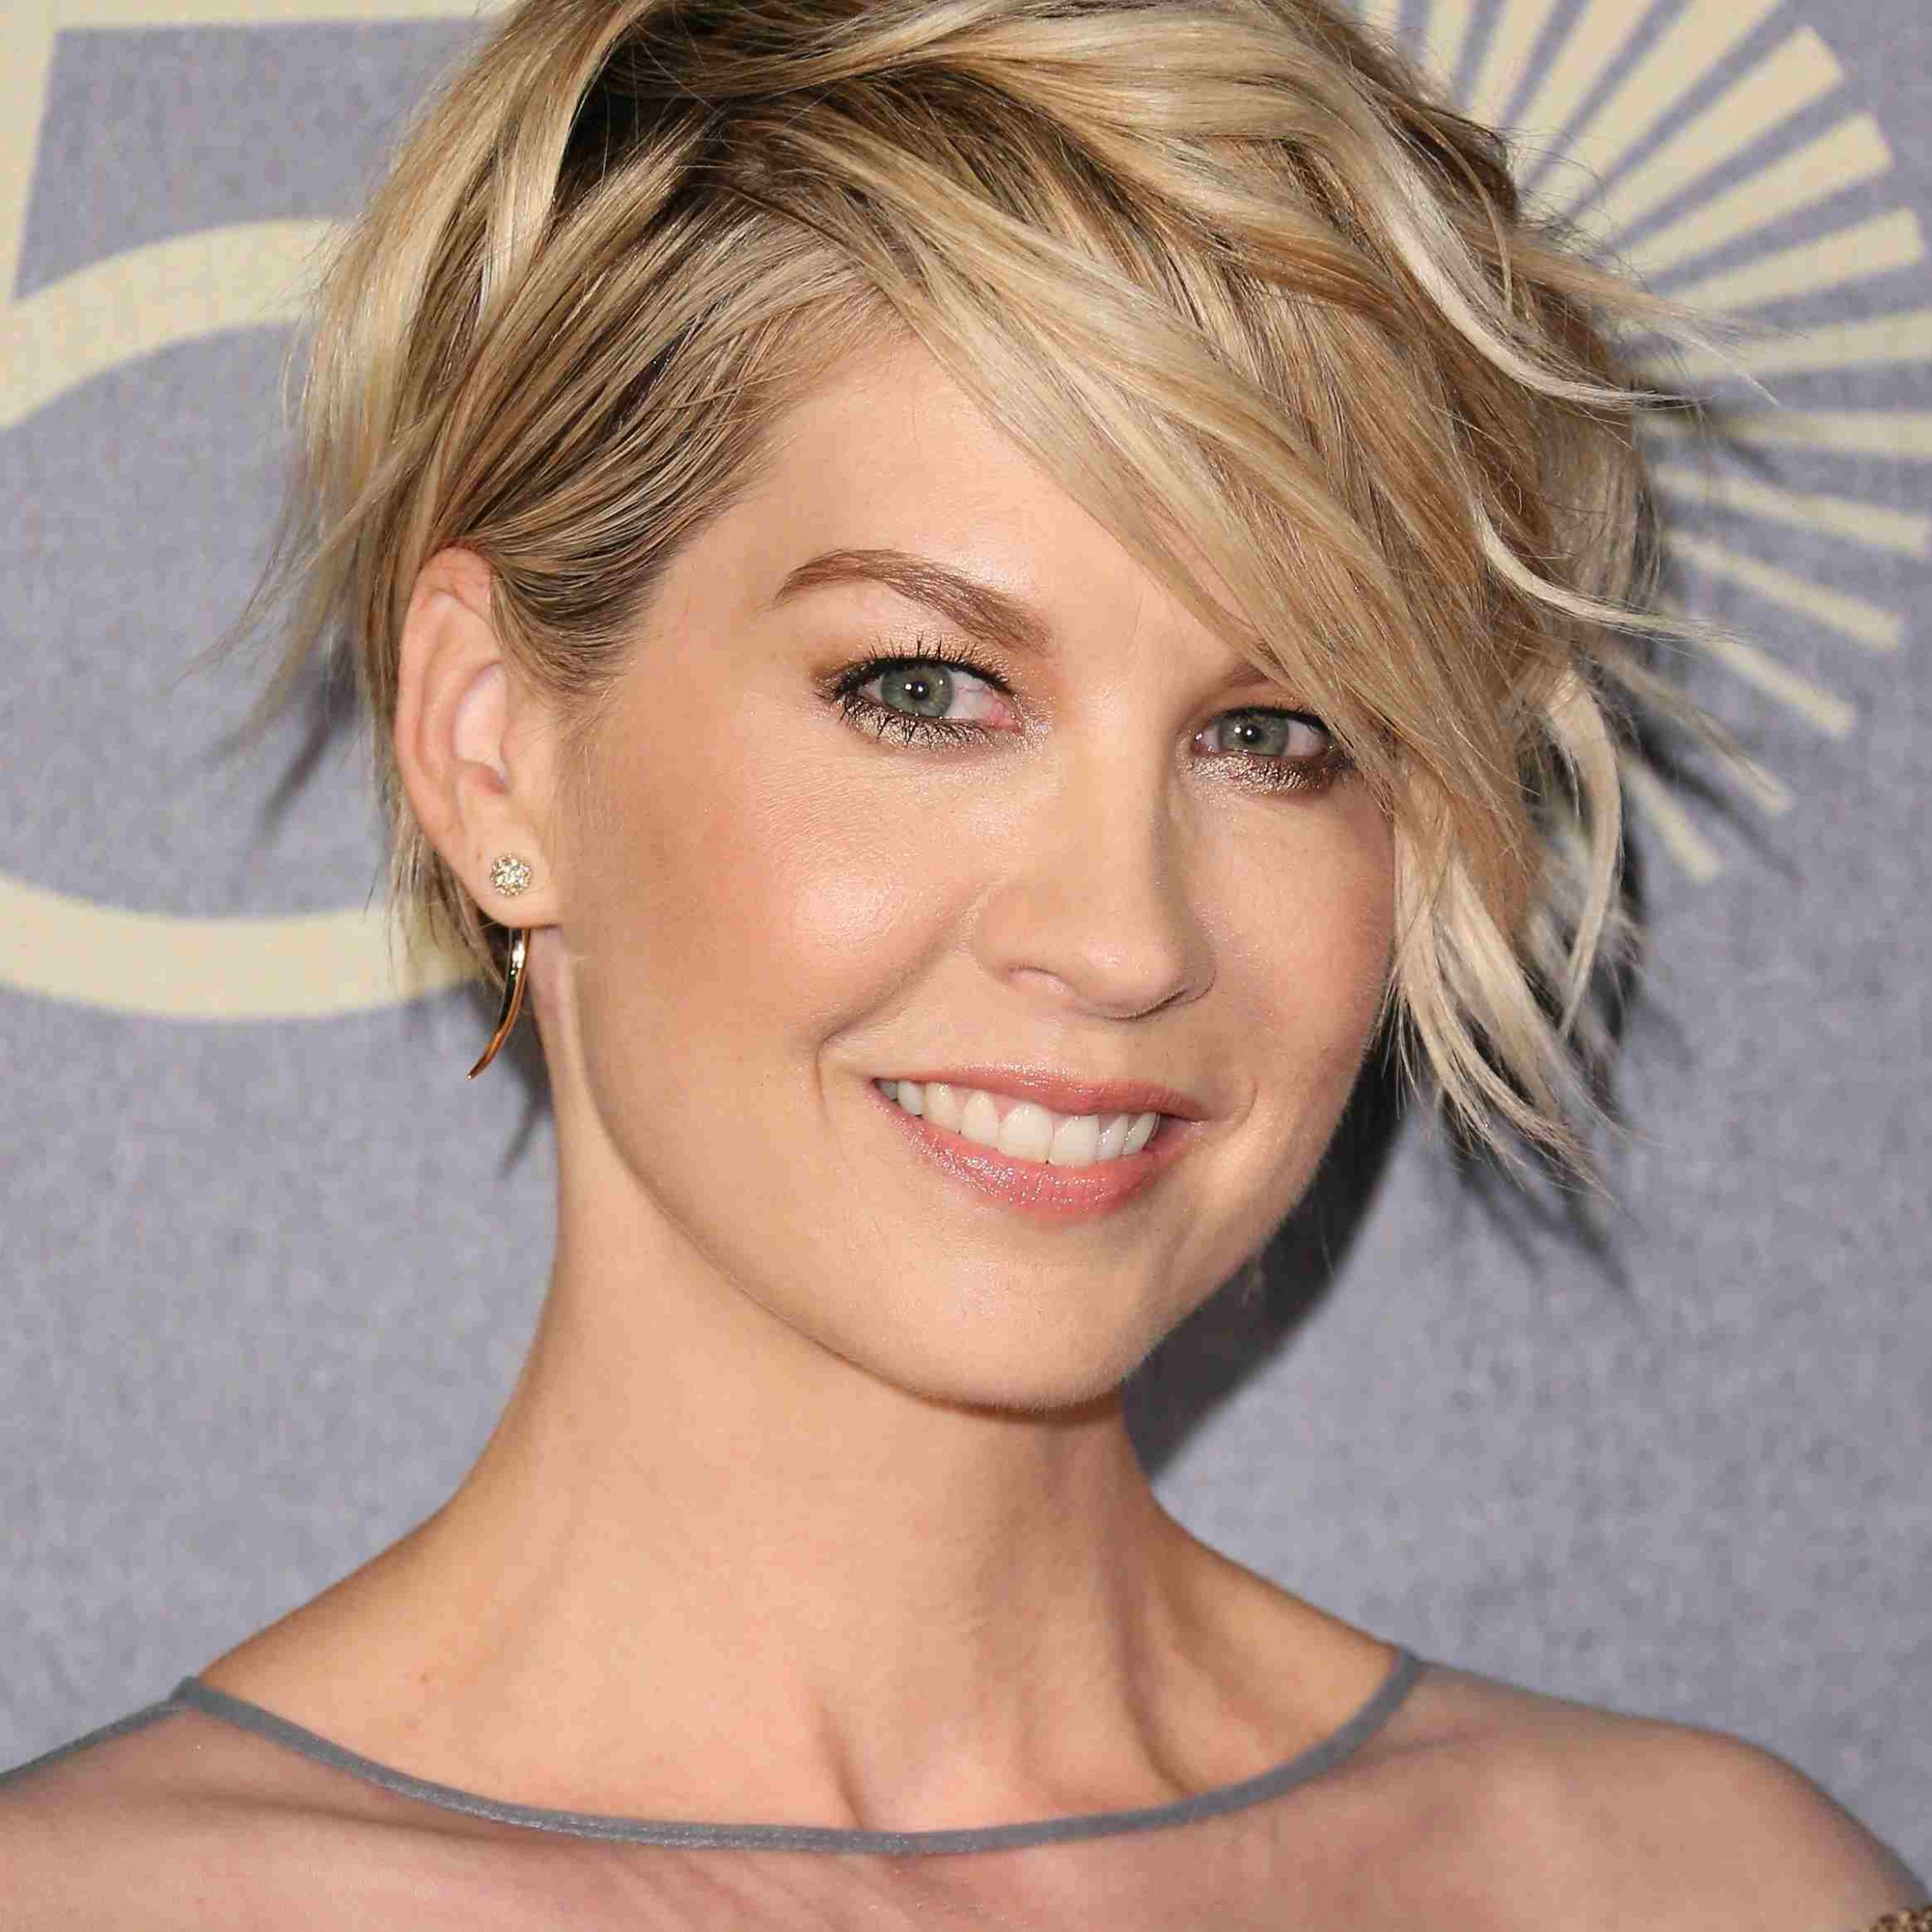 10 Flattering Hairstyles For Oval Faces Short Haircuts For Oval Faces And Thin Hair